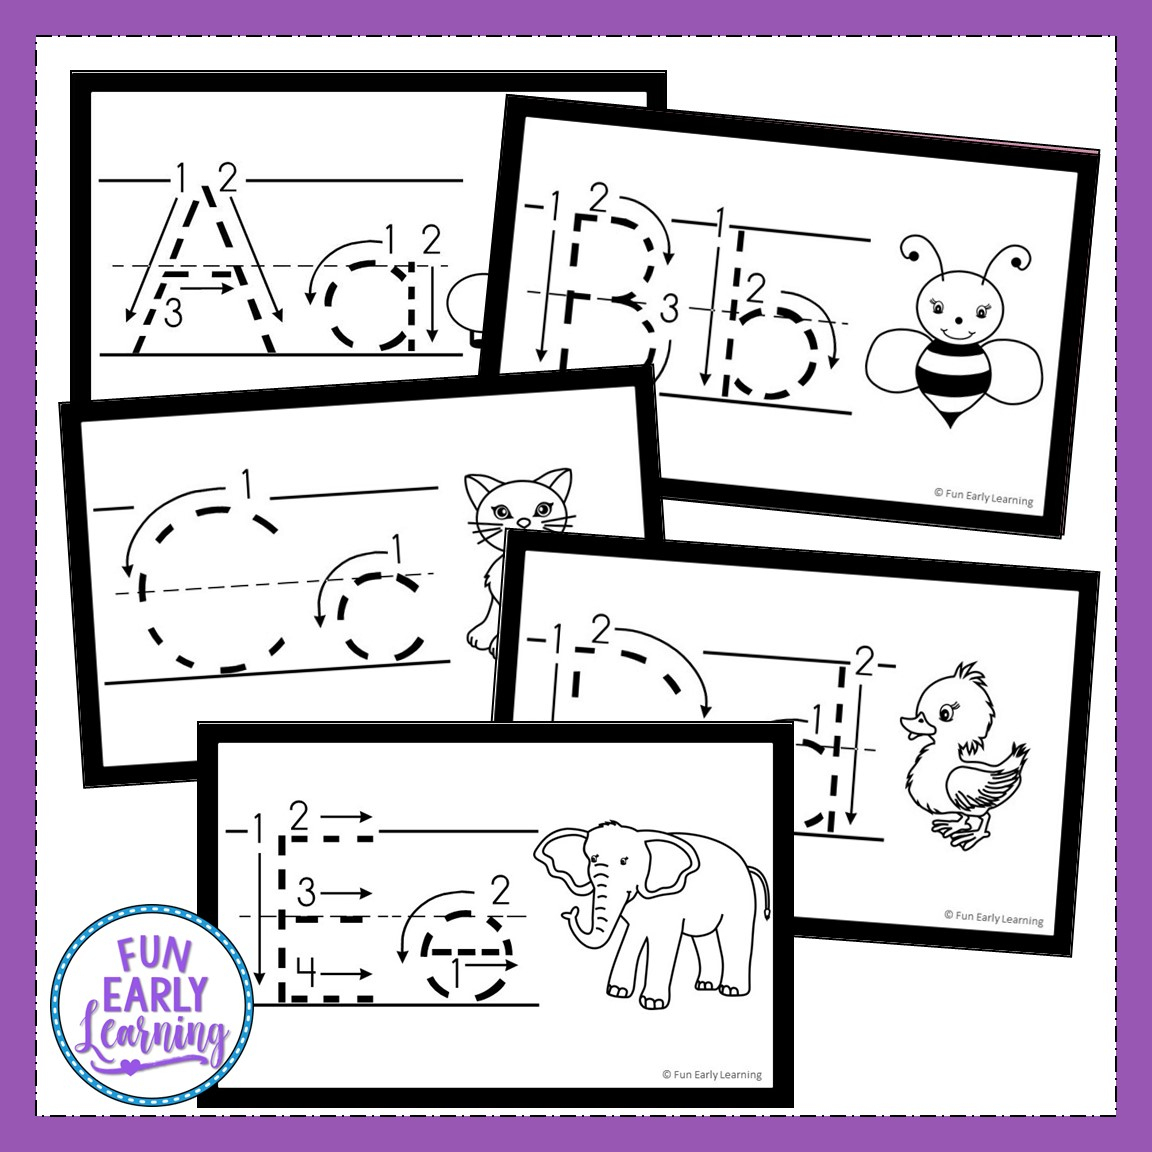 Teach Letters And Writing With Our Free Alphabet Animal Tracing Cards - Free Printable Alphabet Cards With Pictures